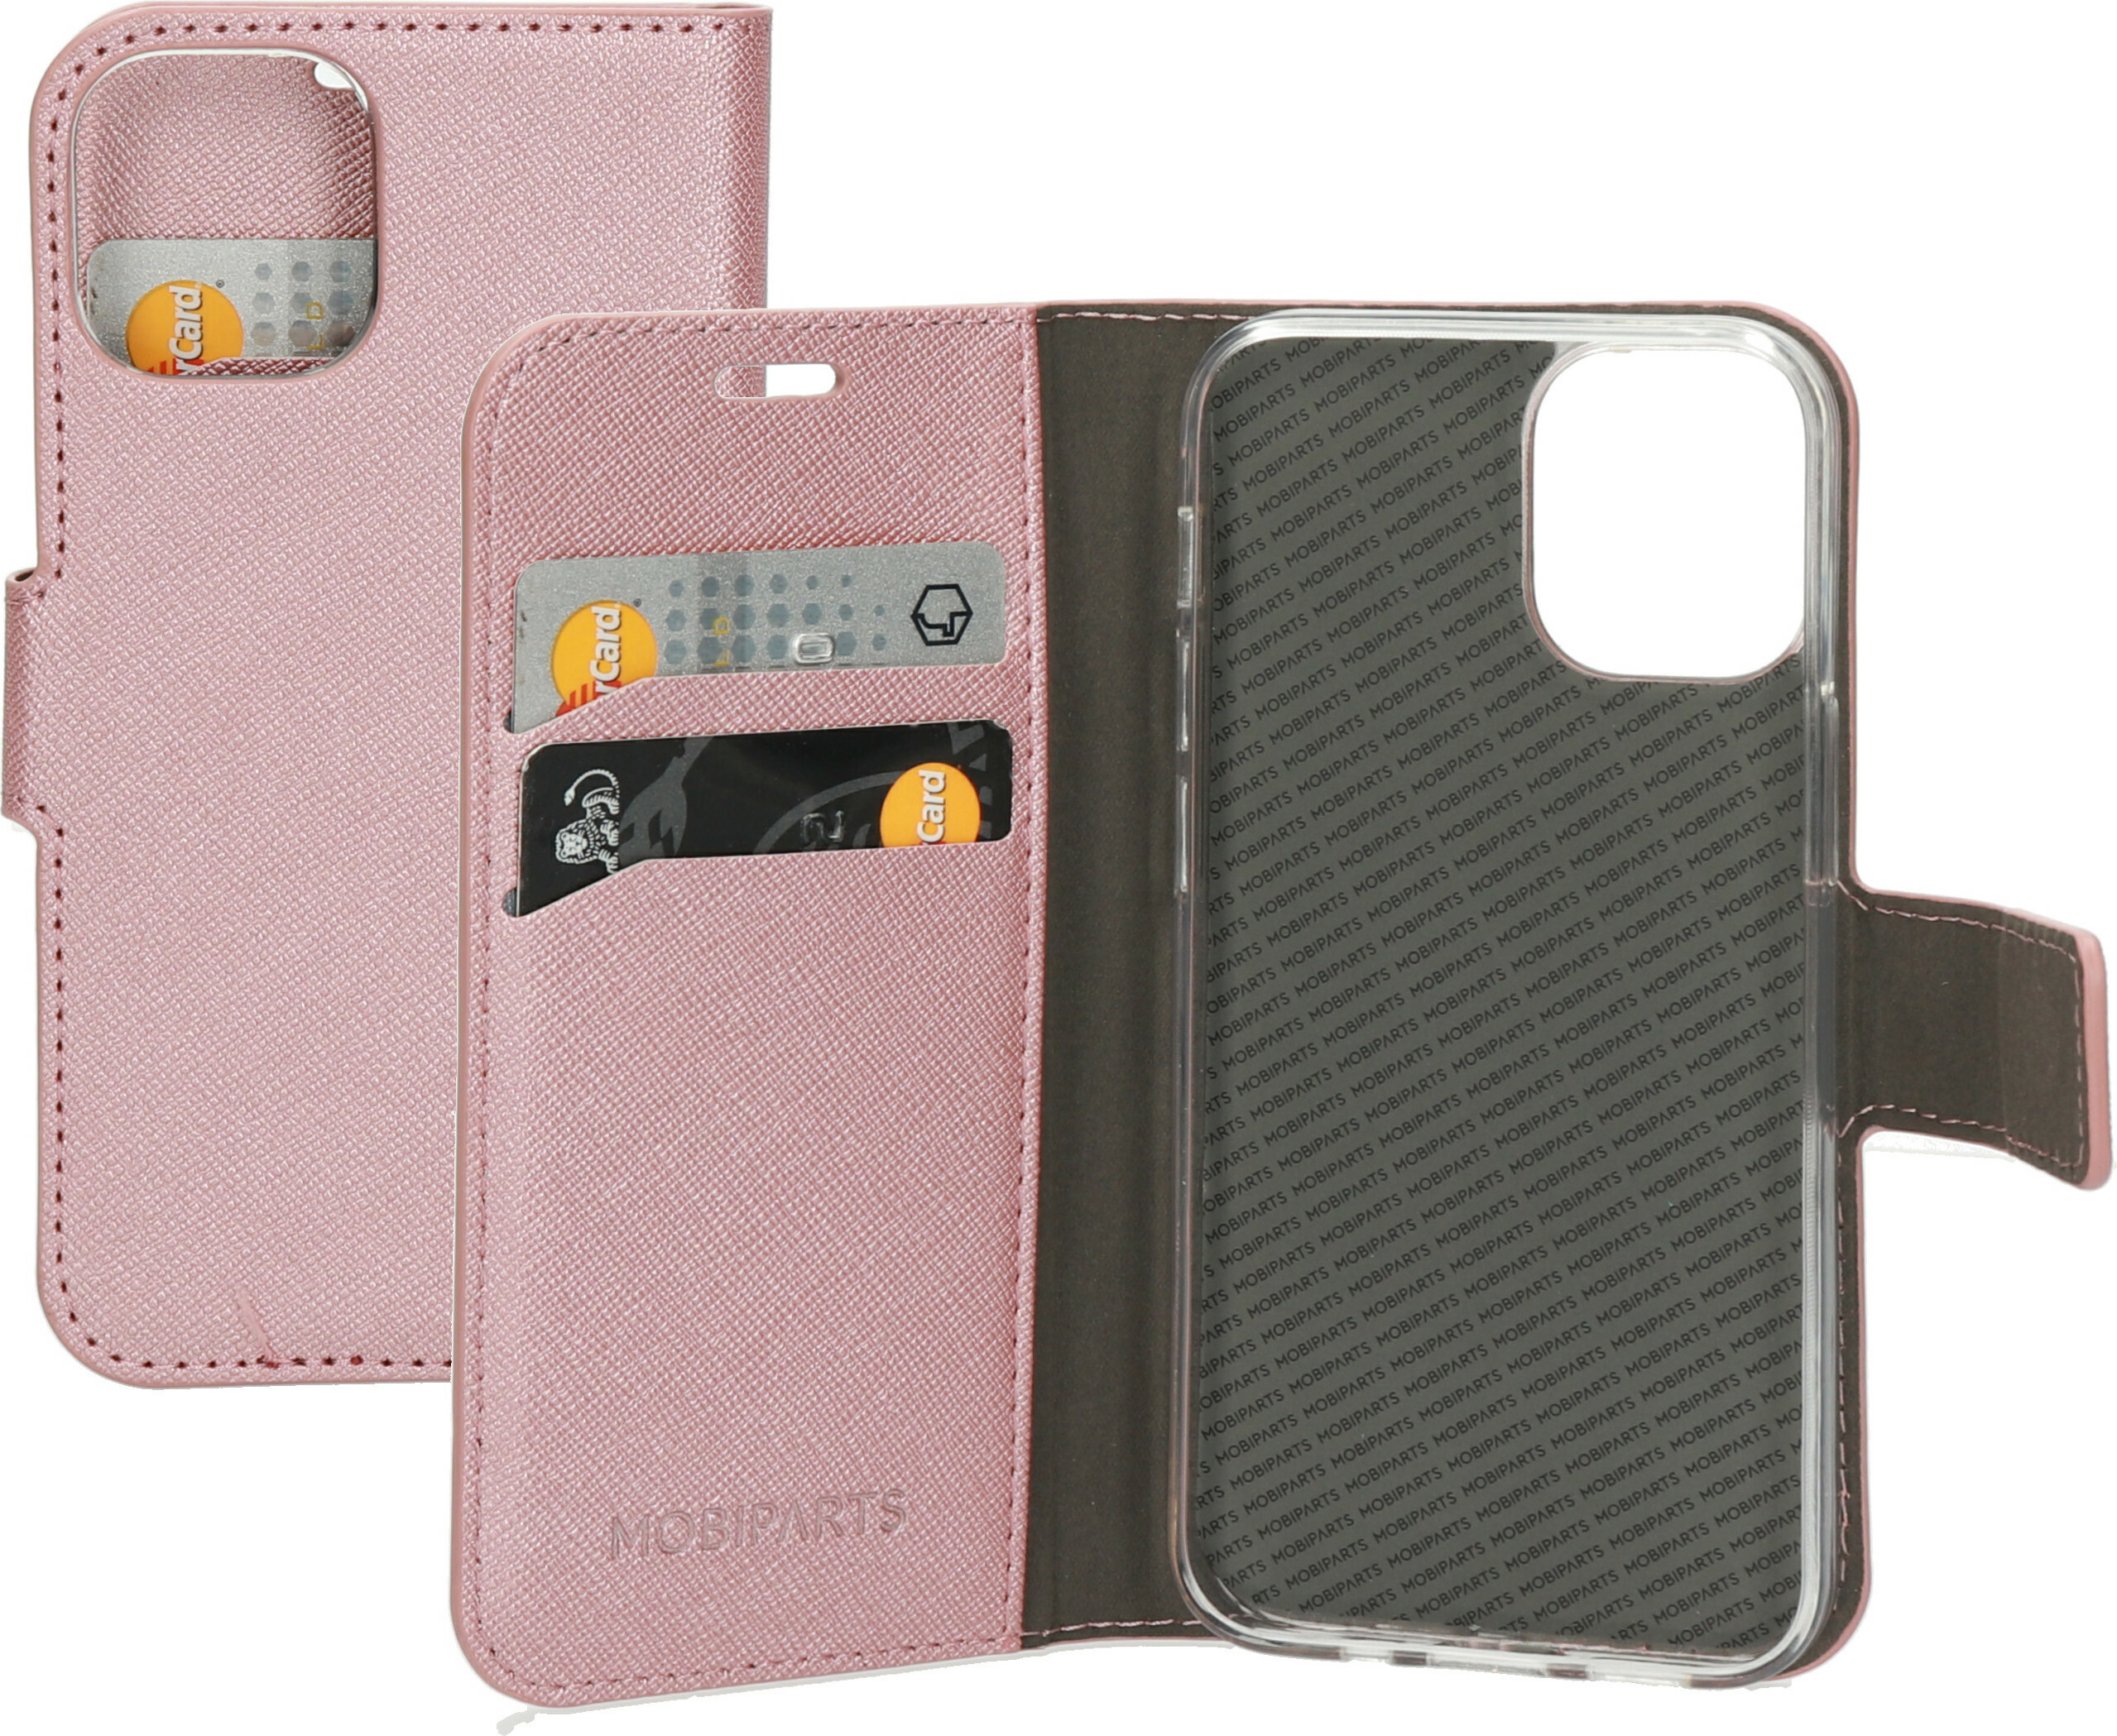 Mobiparts Saffiano Wallet Case Apple iPhone 12 Mini Pink